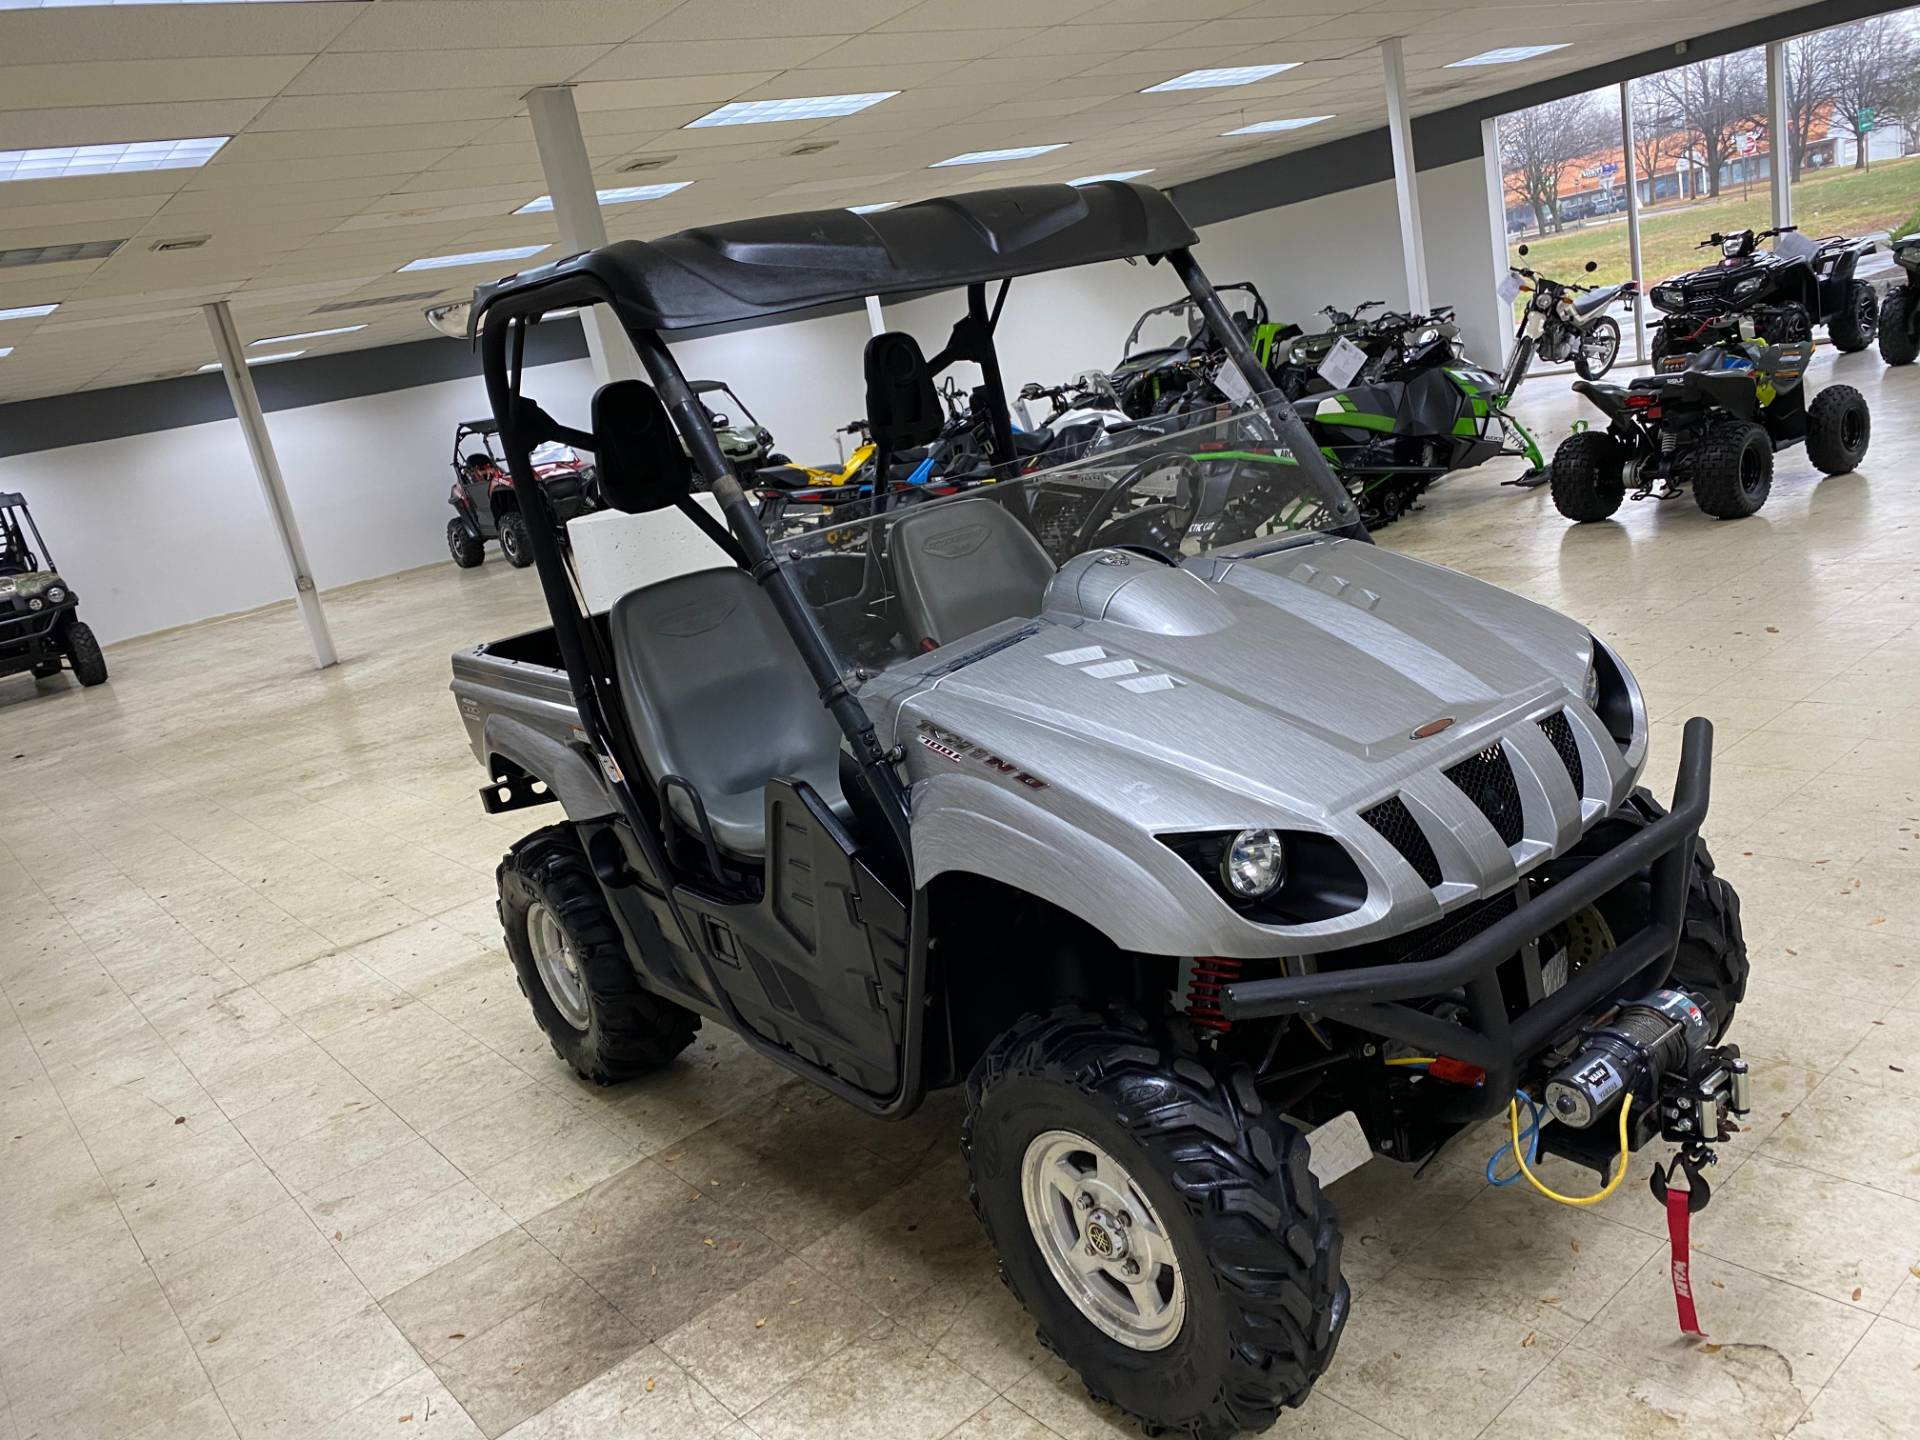 2008 Yamaha Rhino 700 FI Auto. 4x4 Sport Edition in Herkimer, New York - Photo 6